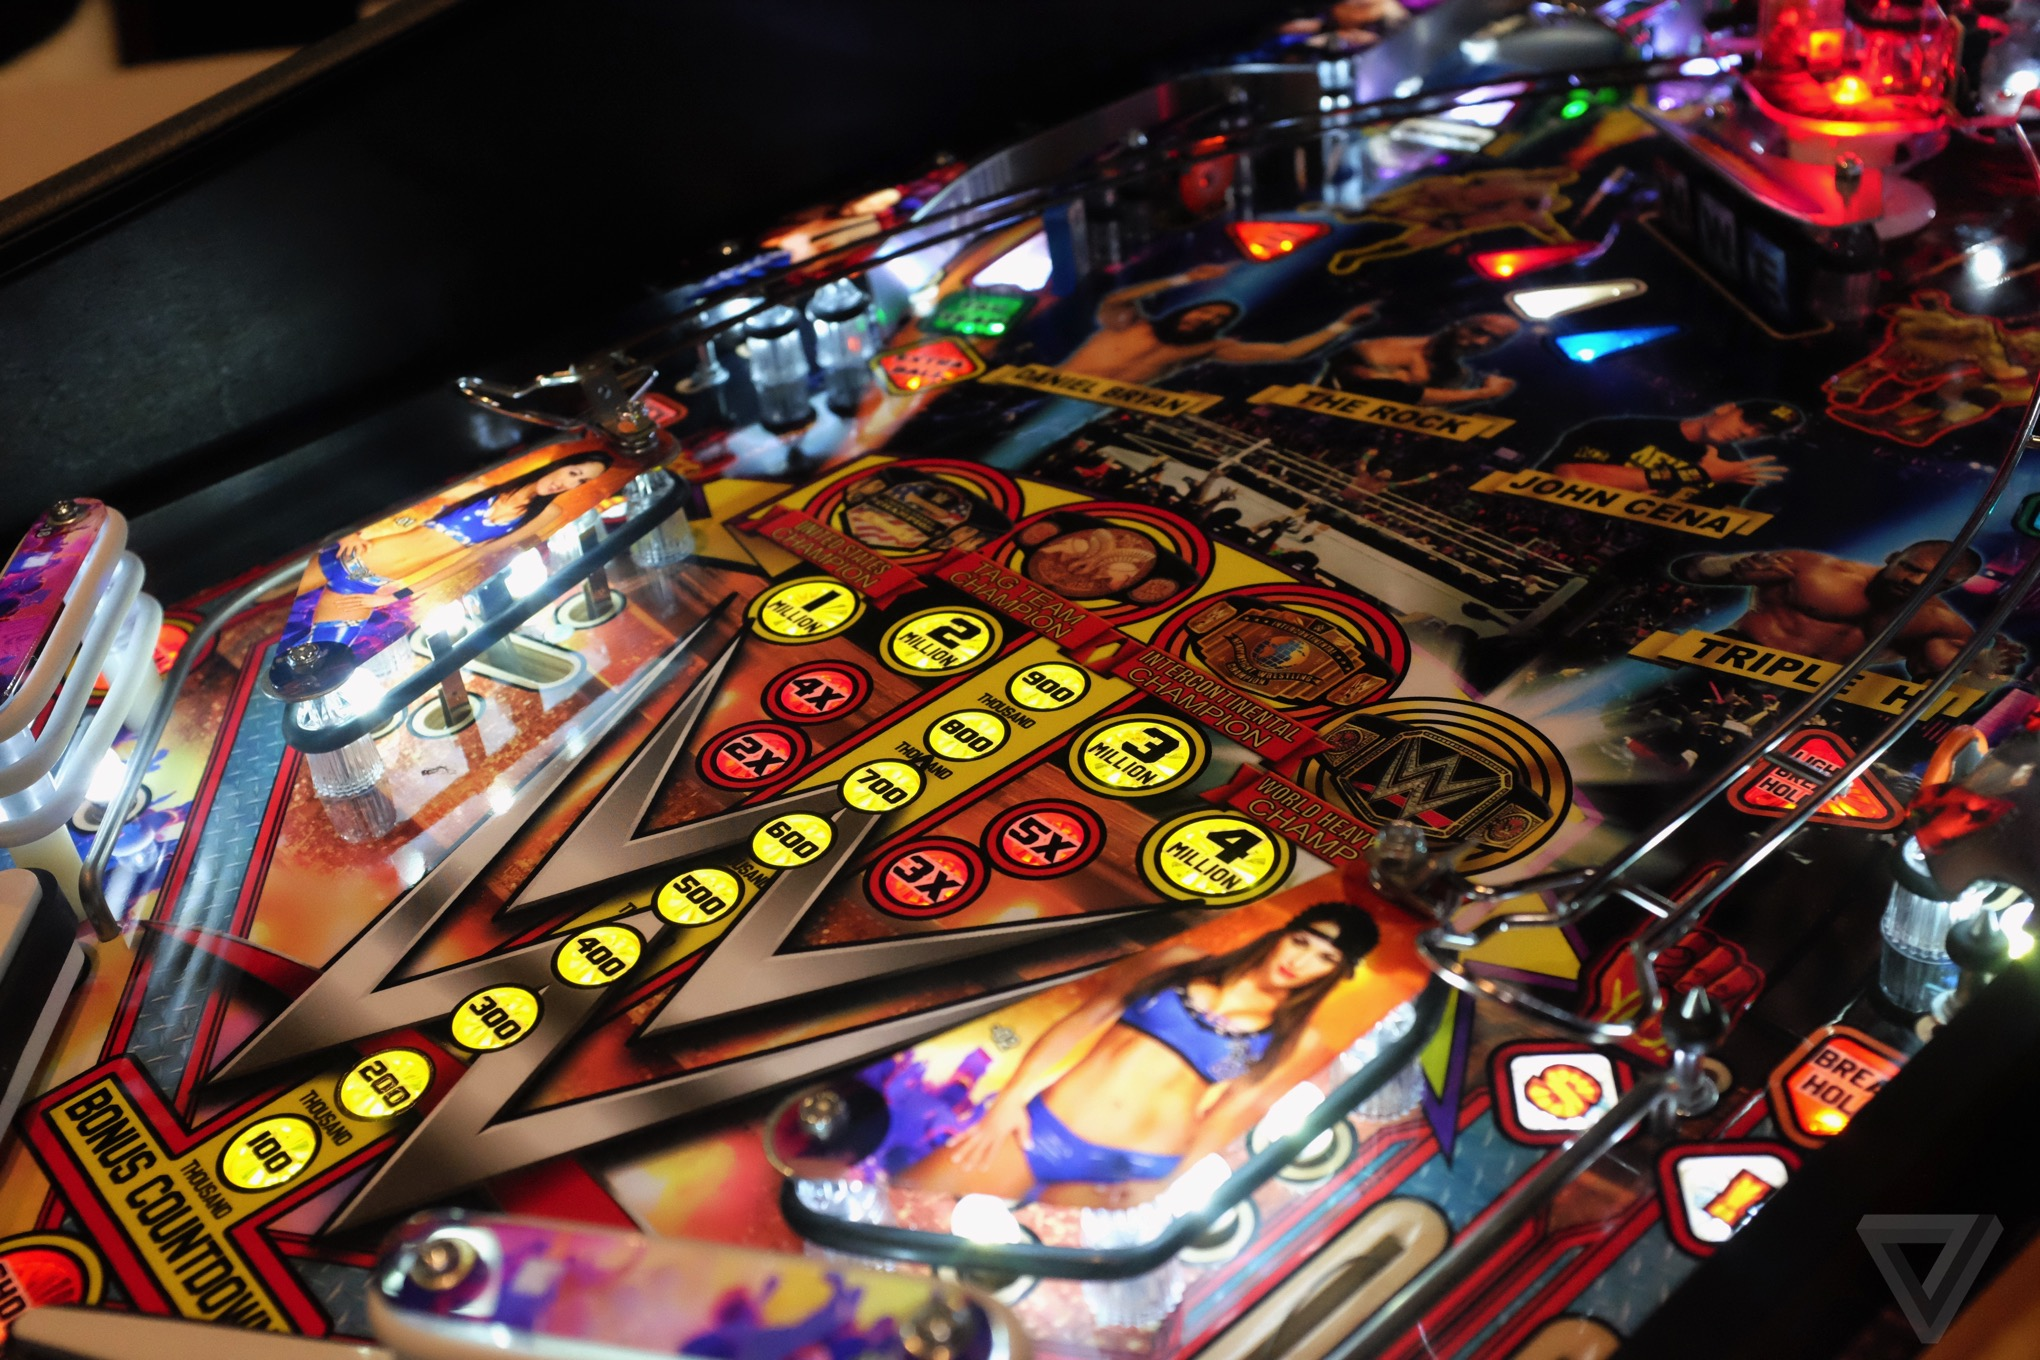 This Wrestlemania pinball machine is Stern's newest, most